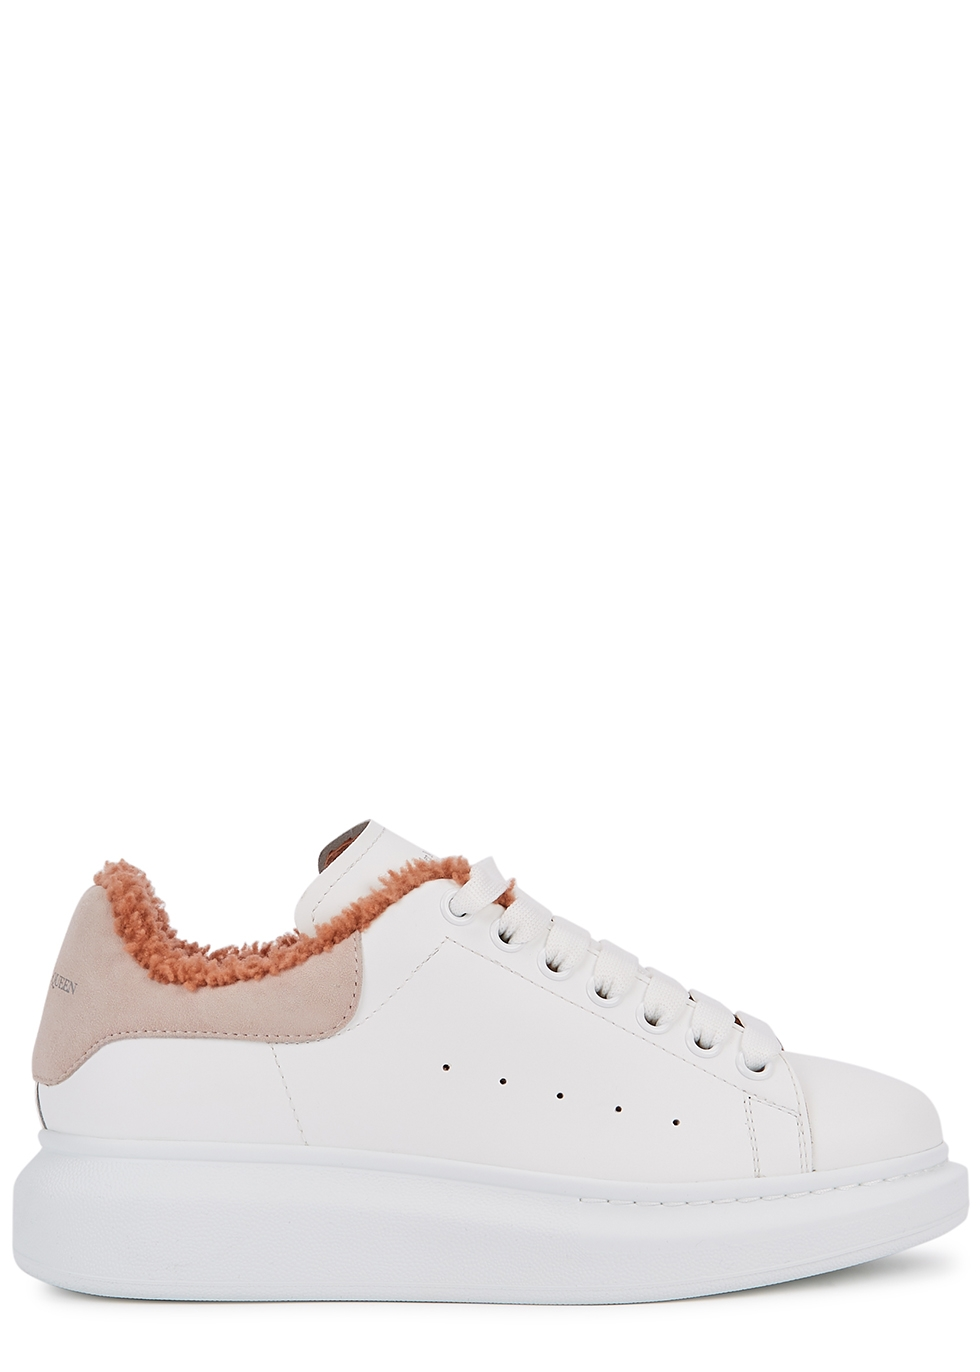 Larry white shearling-lined leather sneakers